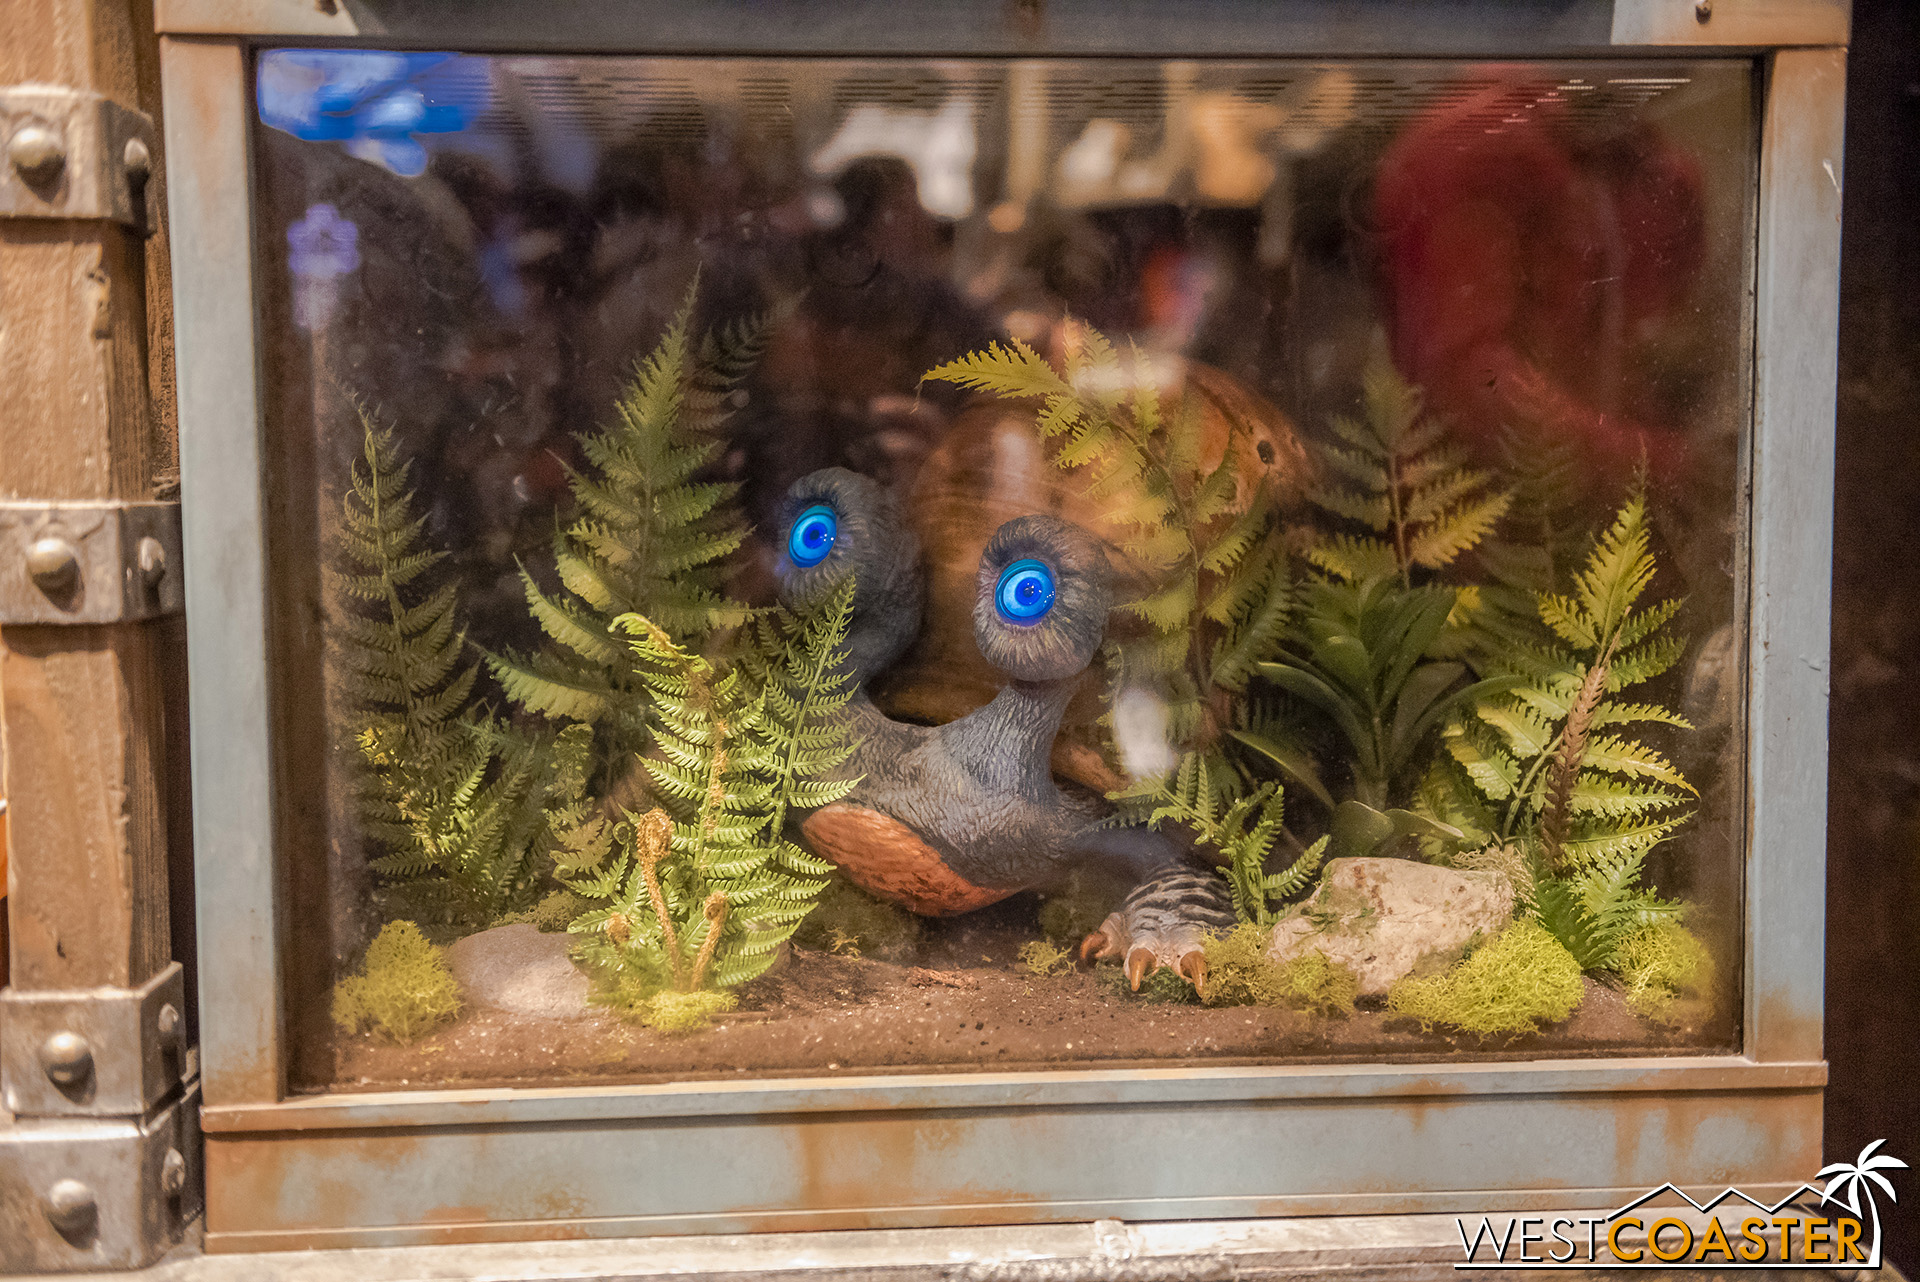 The shop seems to double as a creature exhibit too.